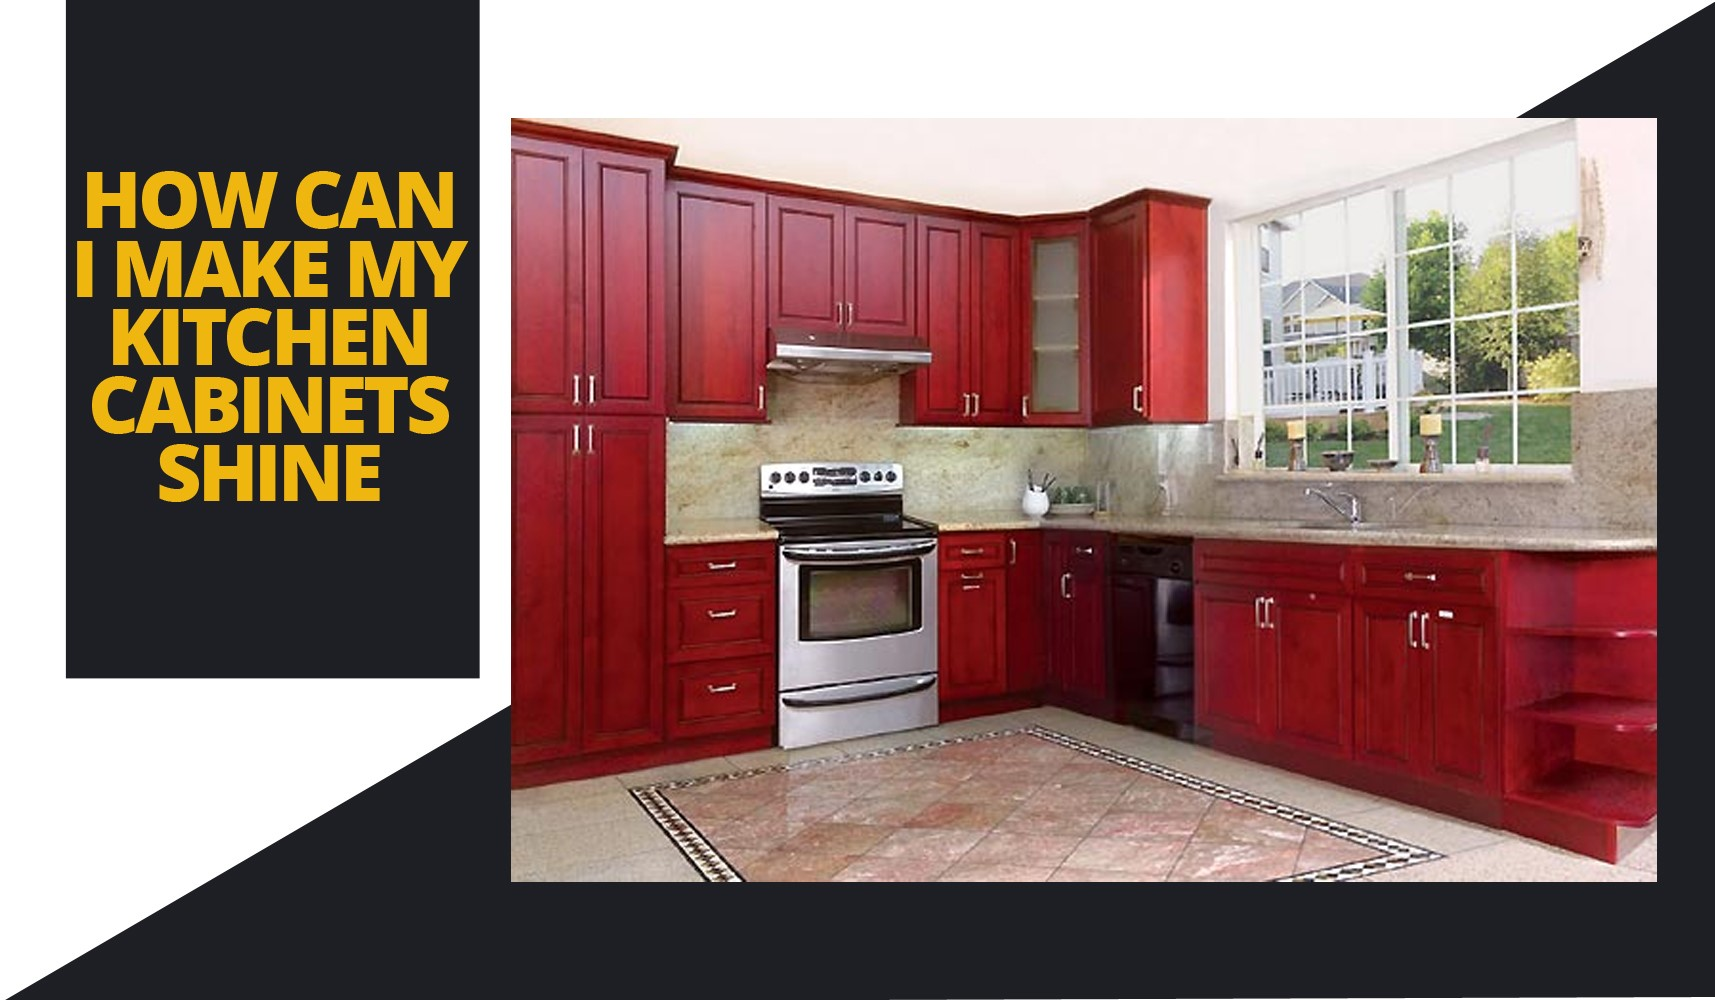 How To Make Kitchen Cabinets Shine How Can I Make My Kitchen Cabinets Shine   FGY Stone and Cabinet